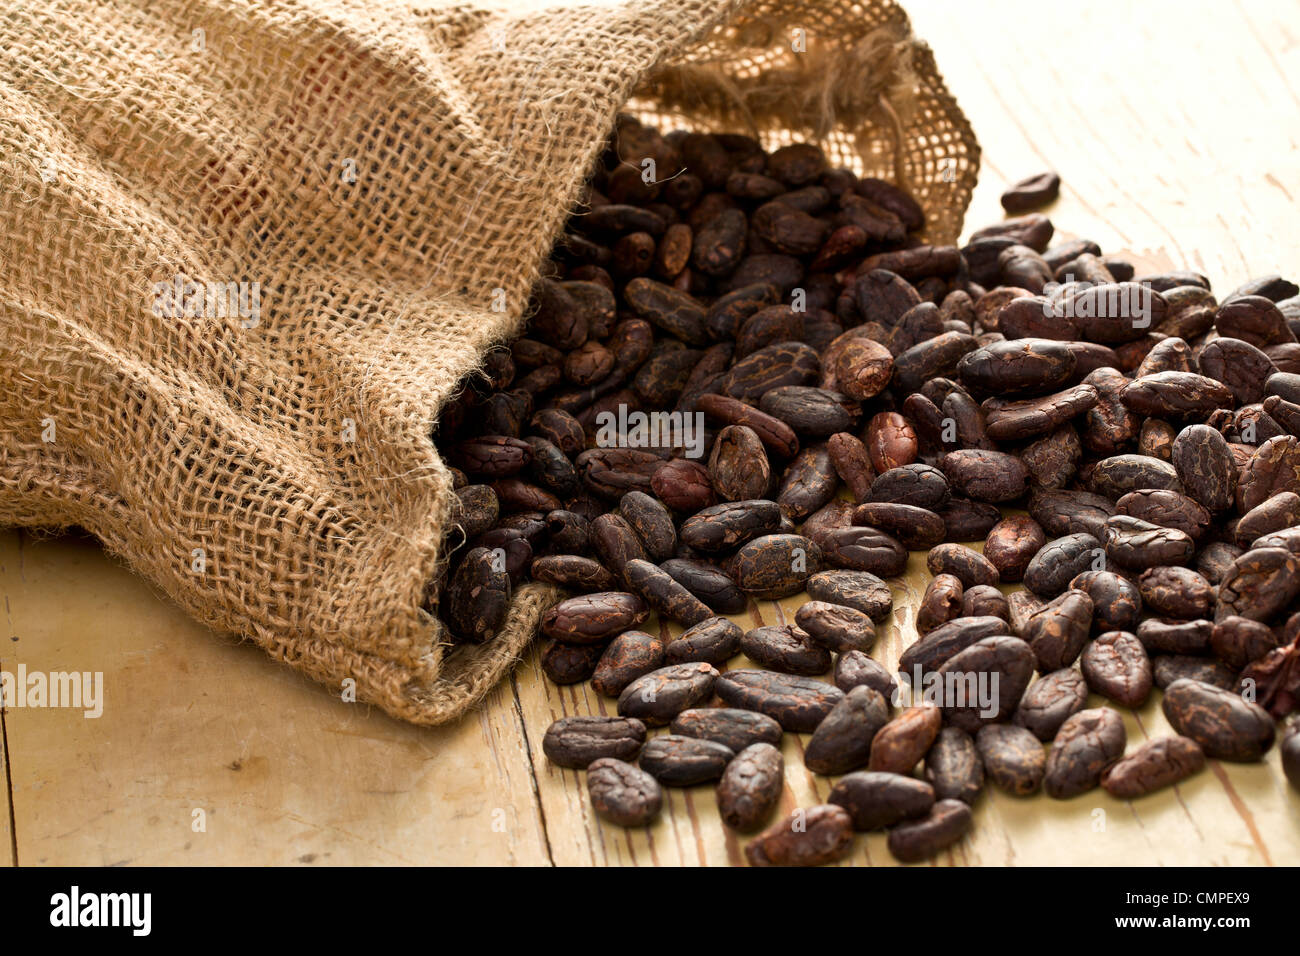 the jute bag with cocoa beans on wooden table - Stock Image